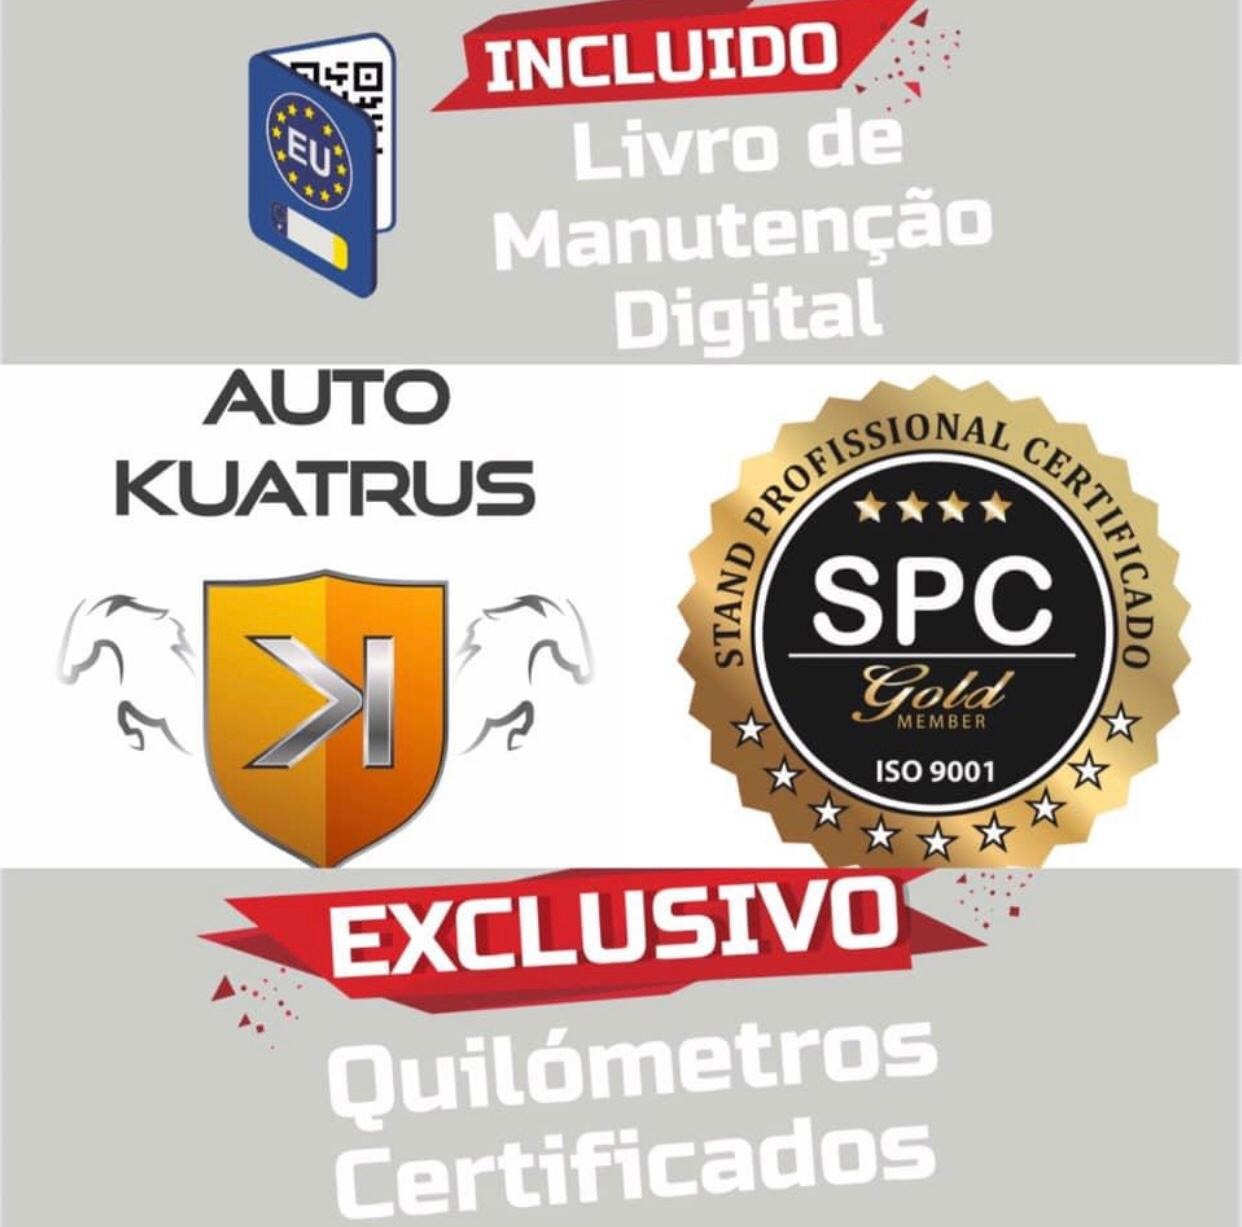 Certificacoes 01